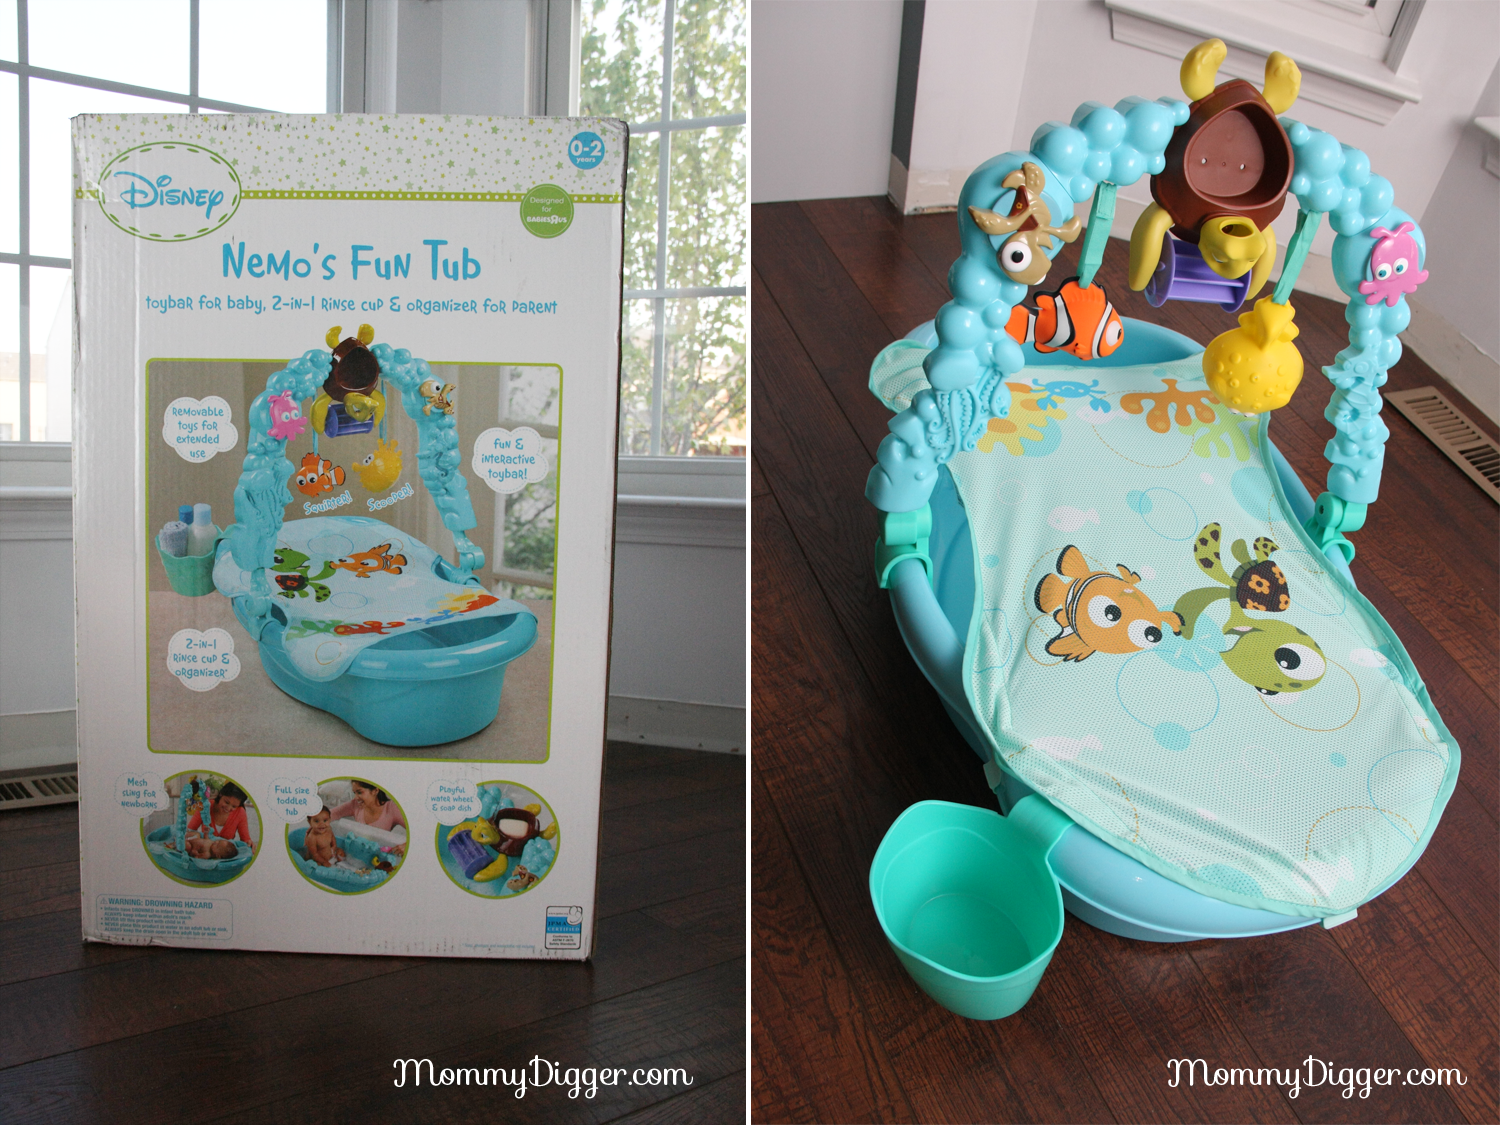 Disney Baby Nemos Fun Tub Review